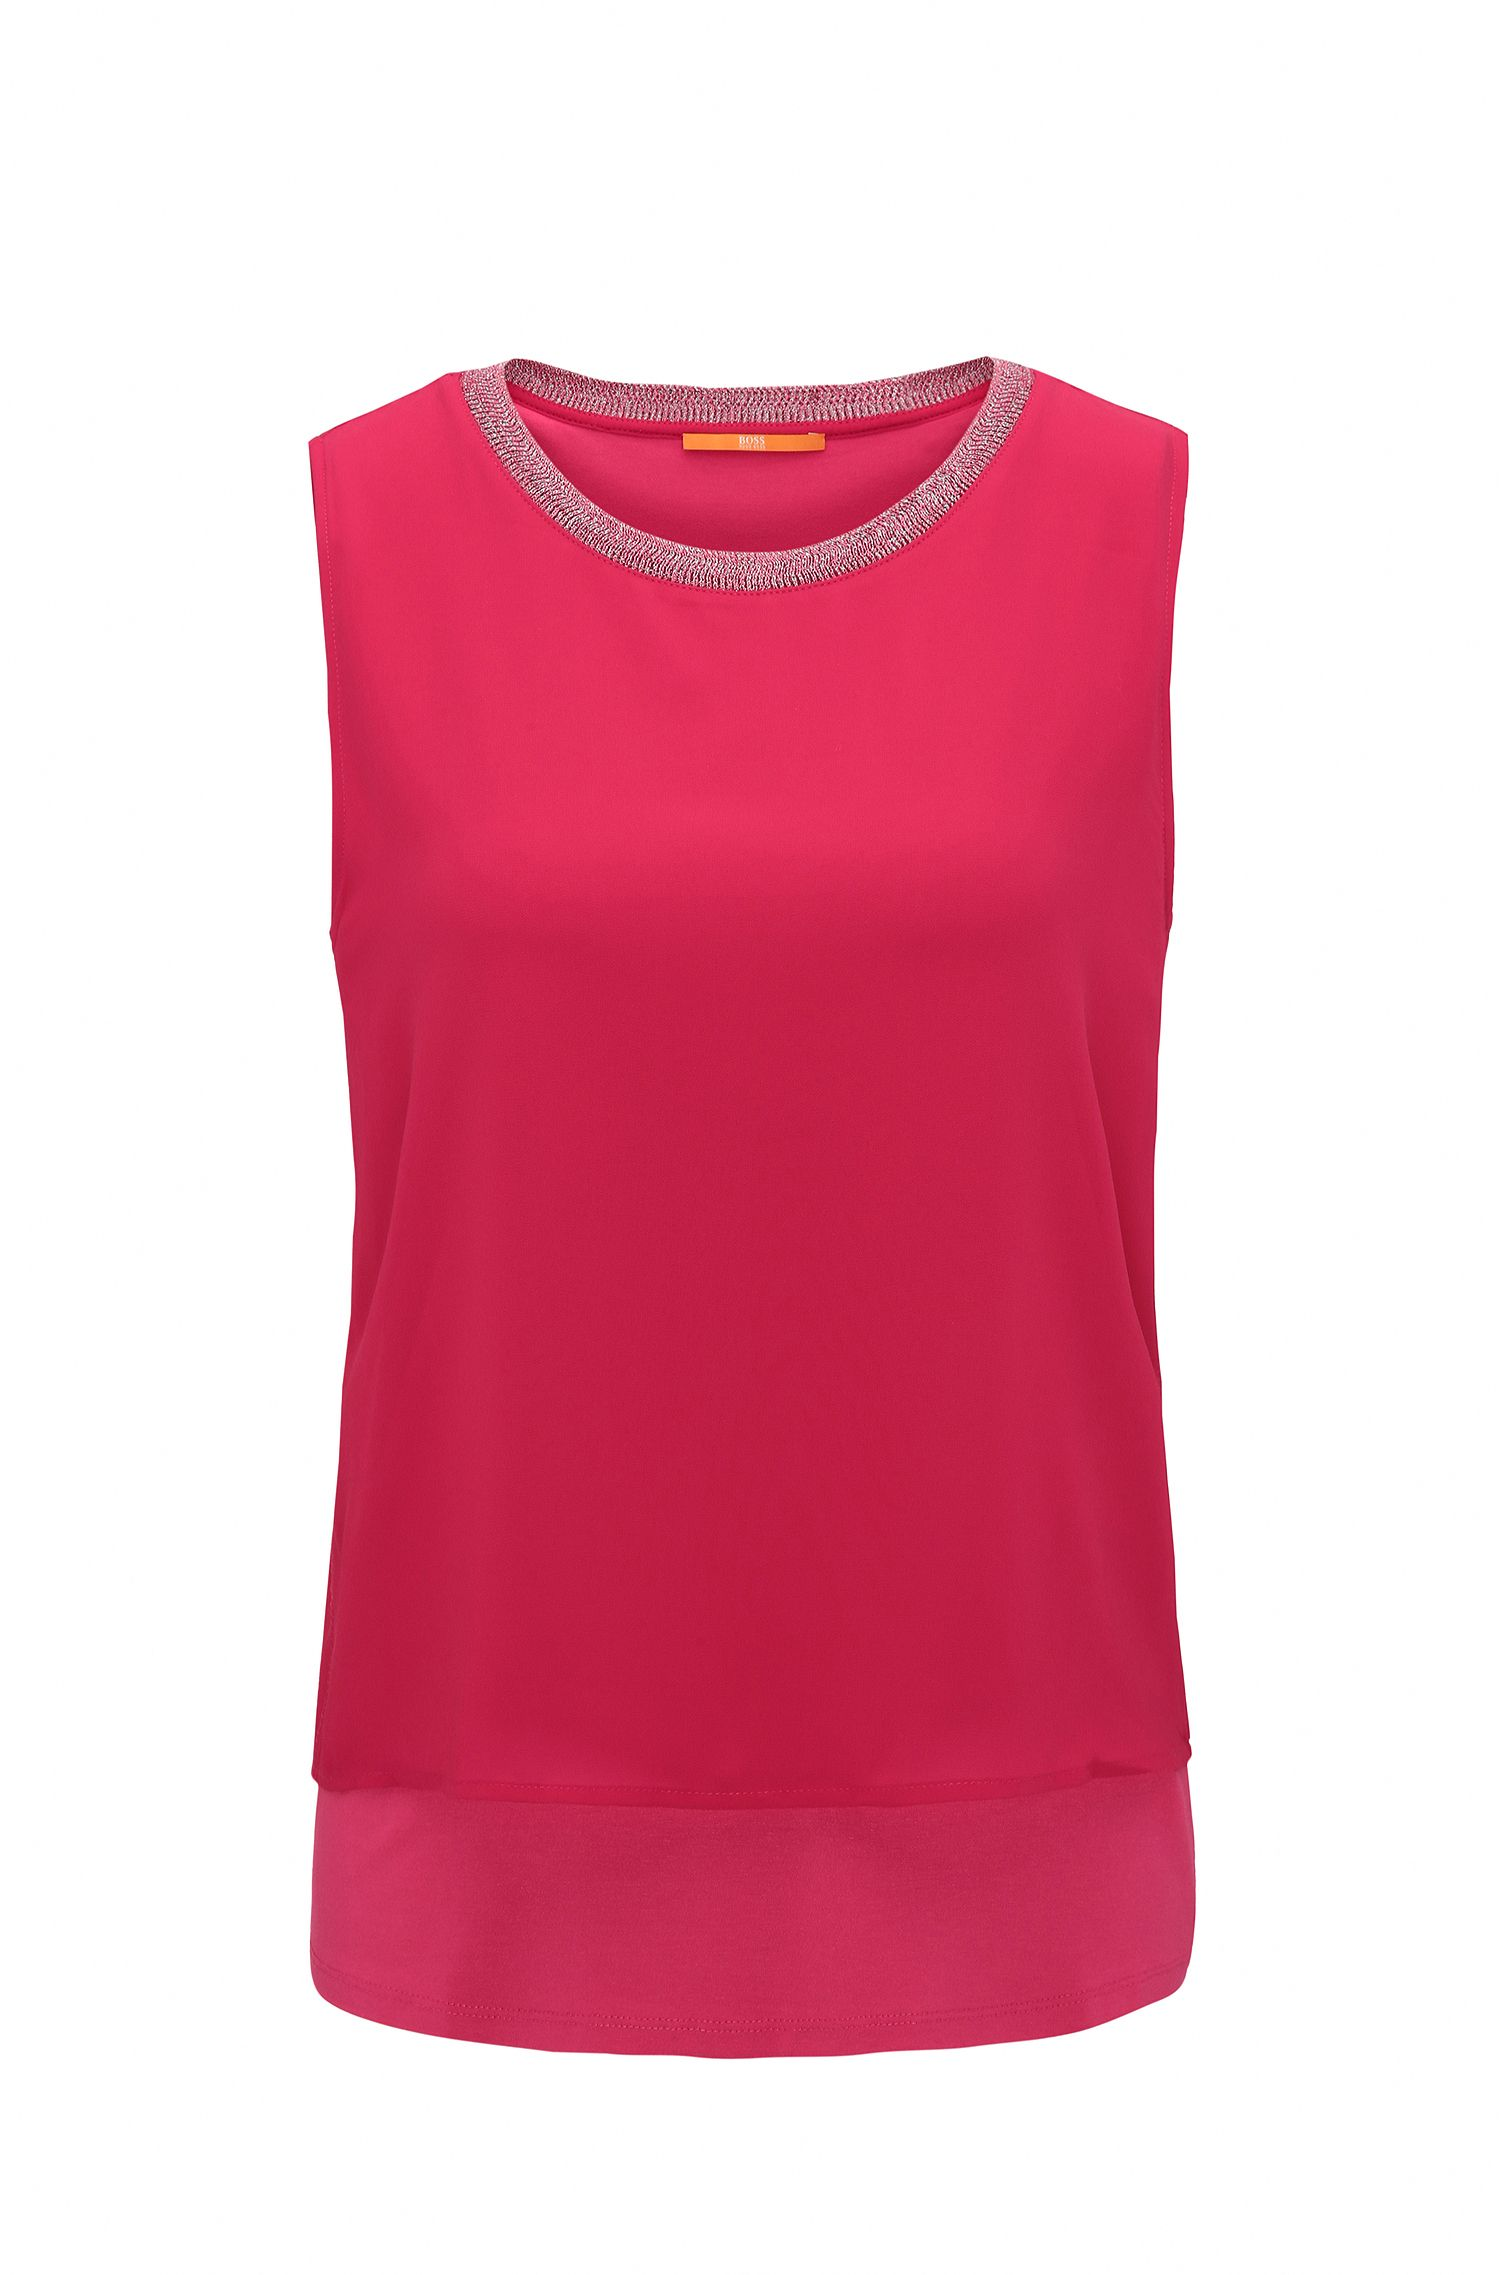 Top senza maniche regular fit in jersey elasticizzato